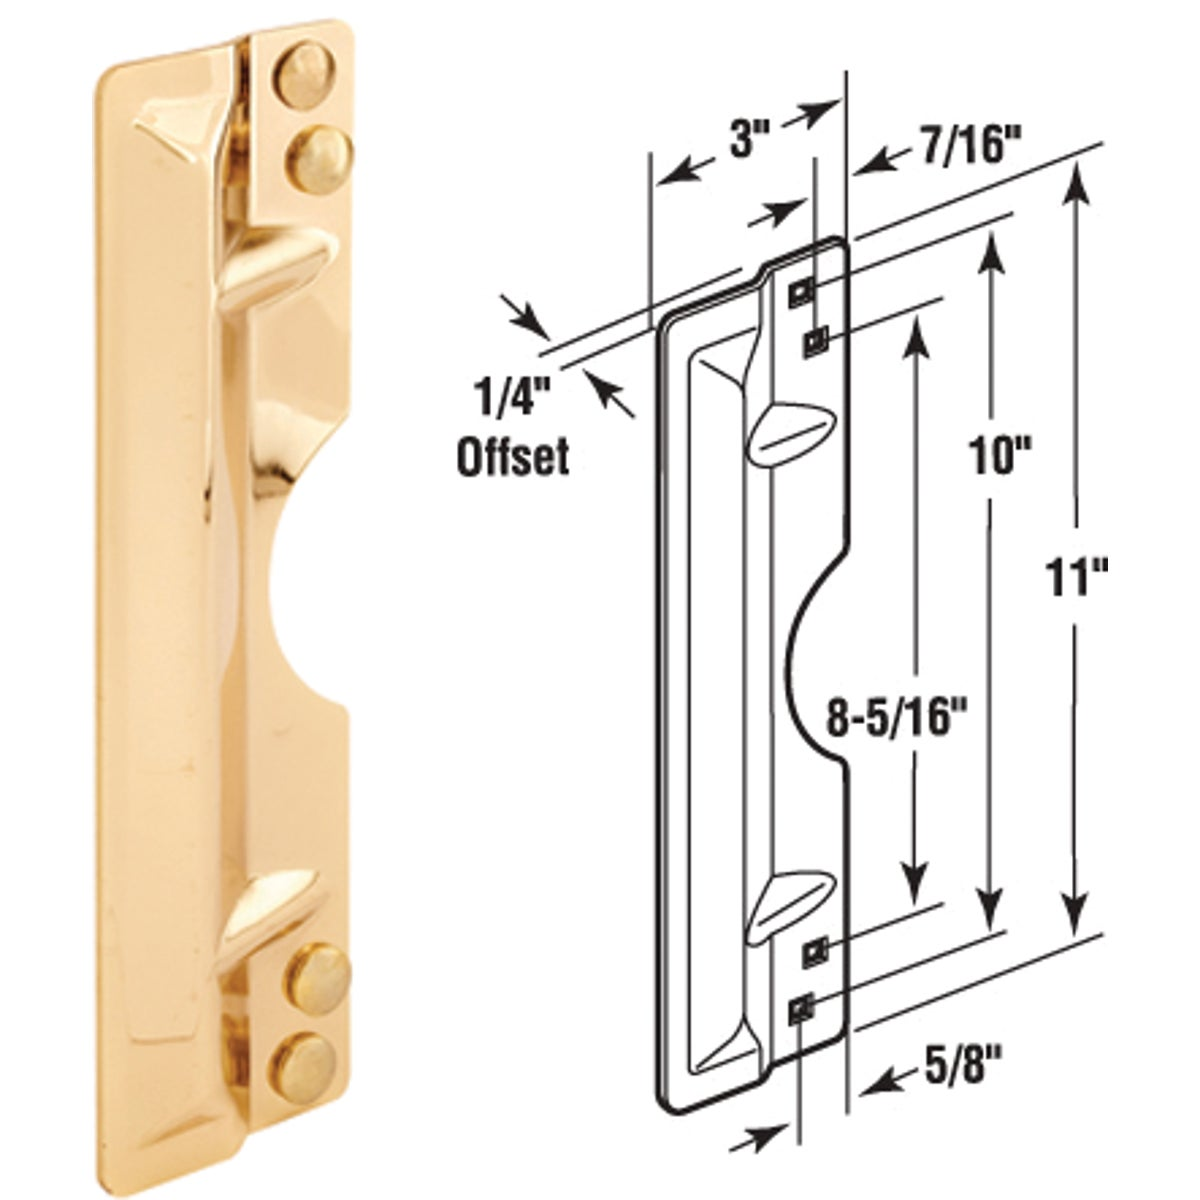 "11-3/4"" PB LATCH GUARD - U 10027 by Prime Line Products"